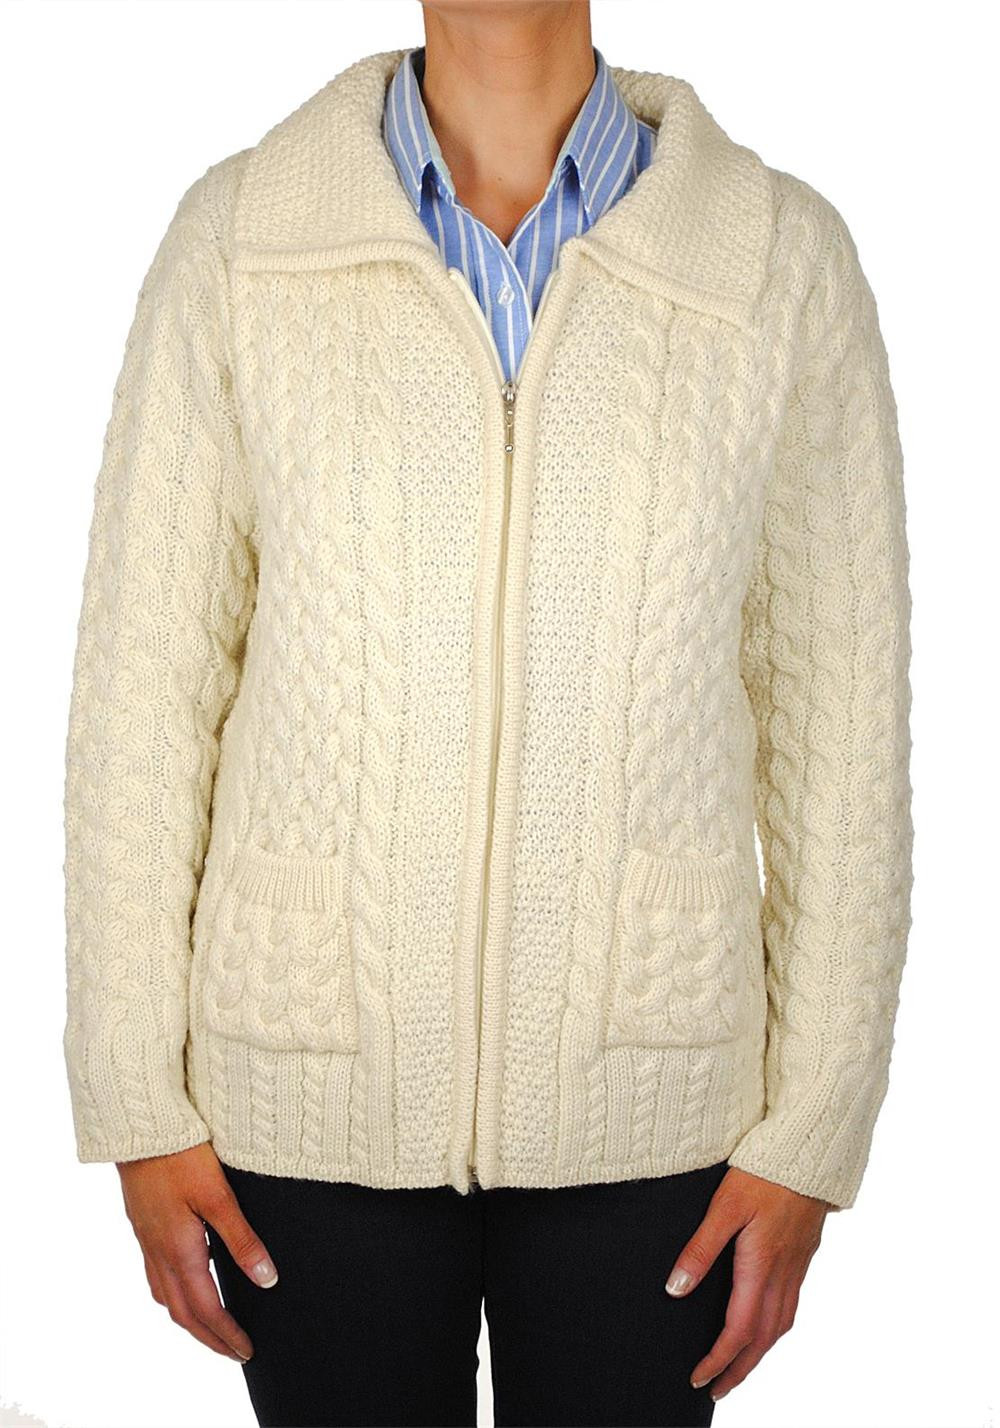 Shades Of Aran Ireland Traditional Knit Cardigan, Cream